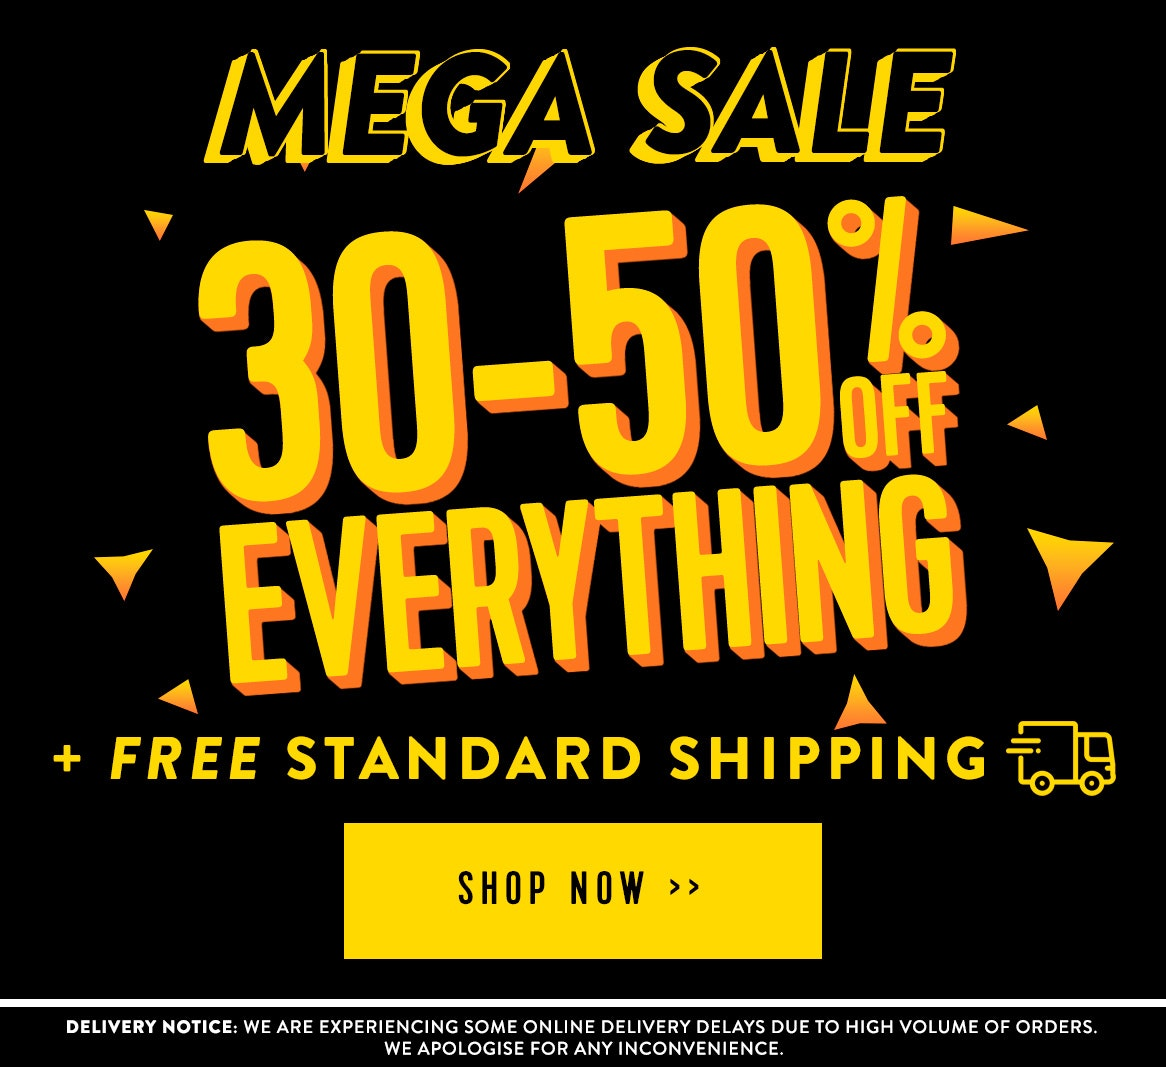 Shop 30-50% off everything